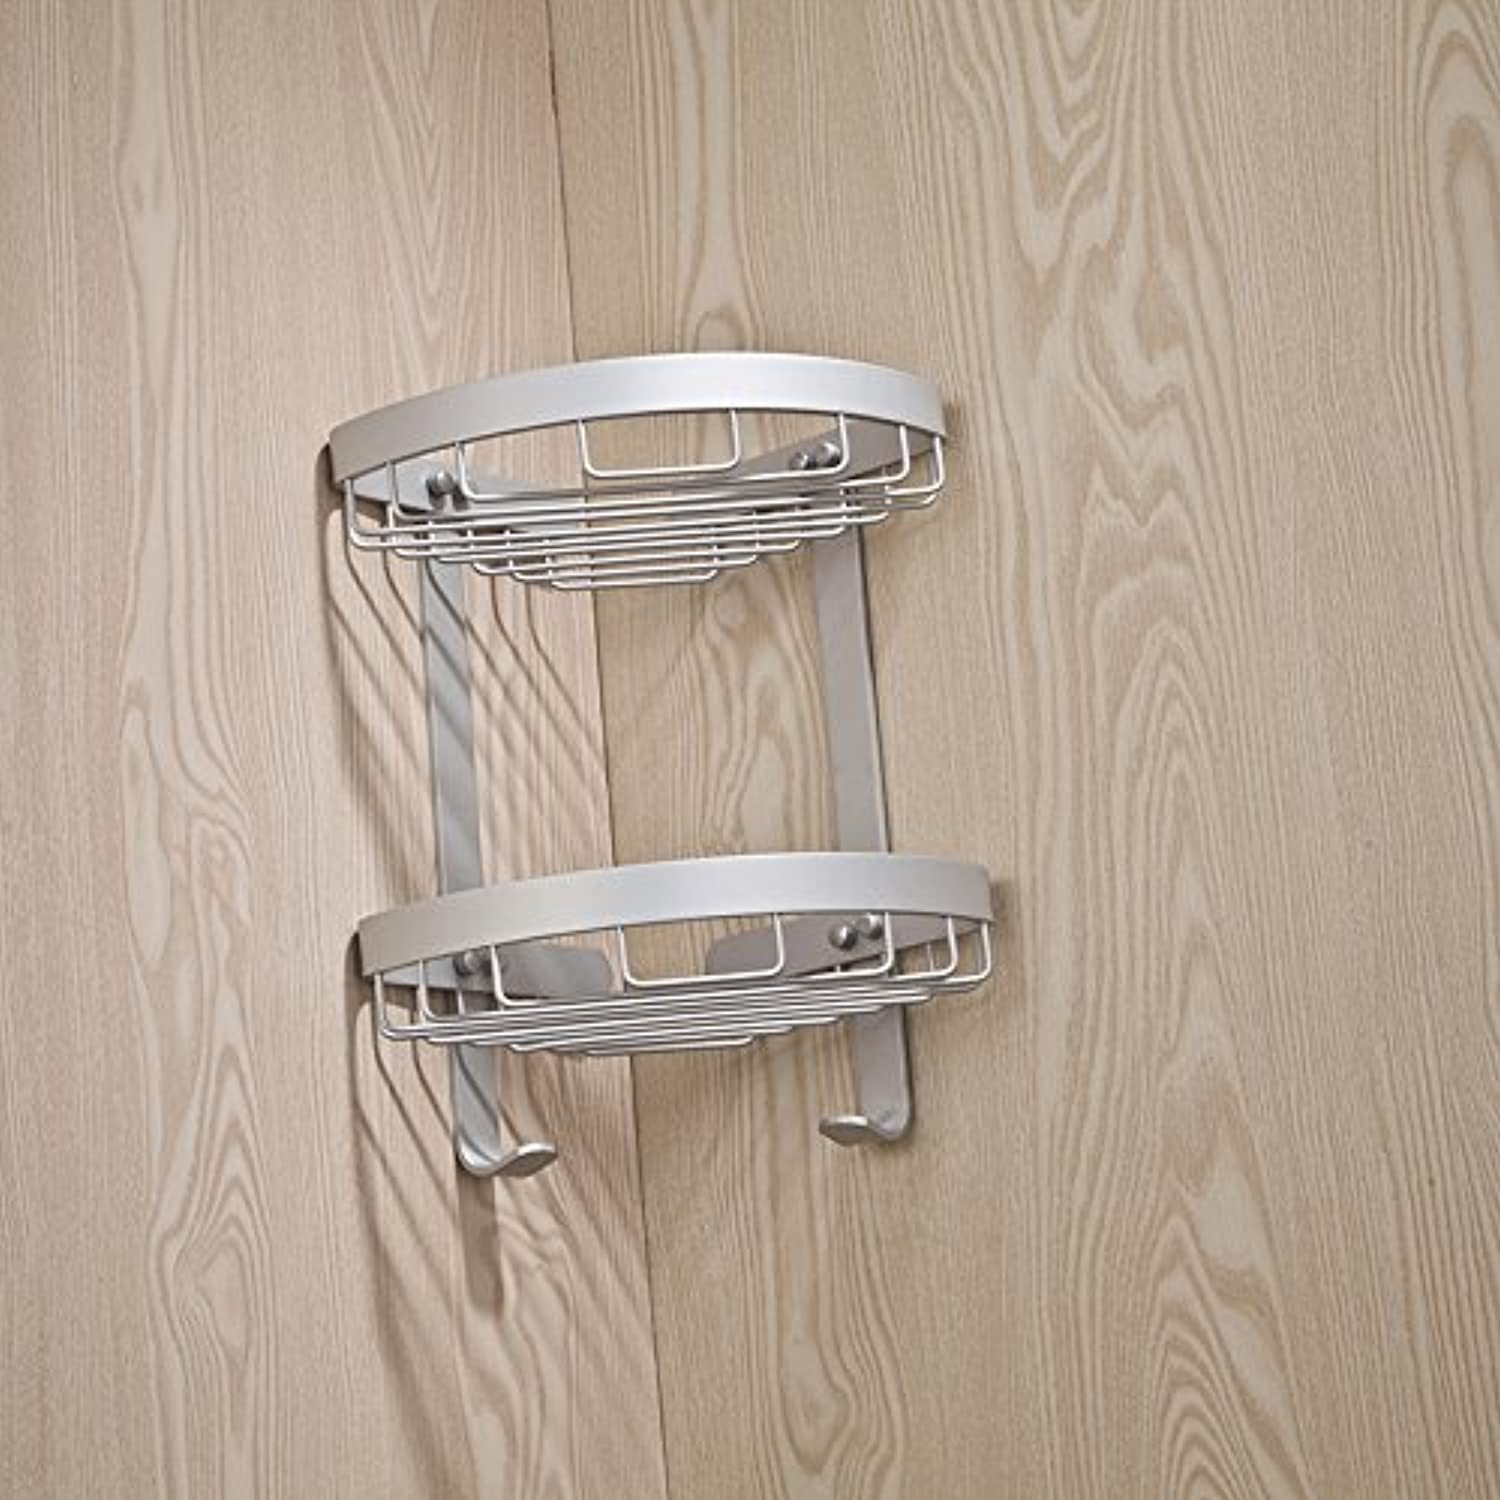 Space aluminum racks corner baskets tripod hanging baskets bathroom rack